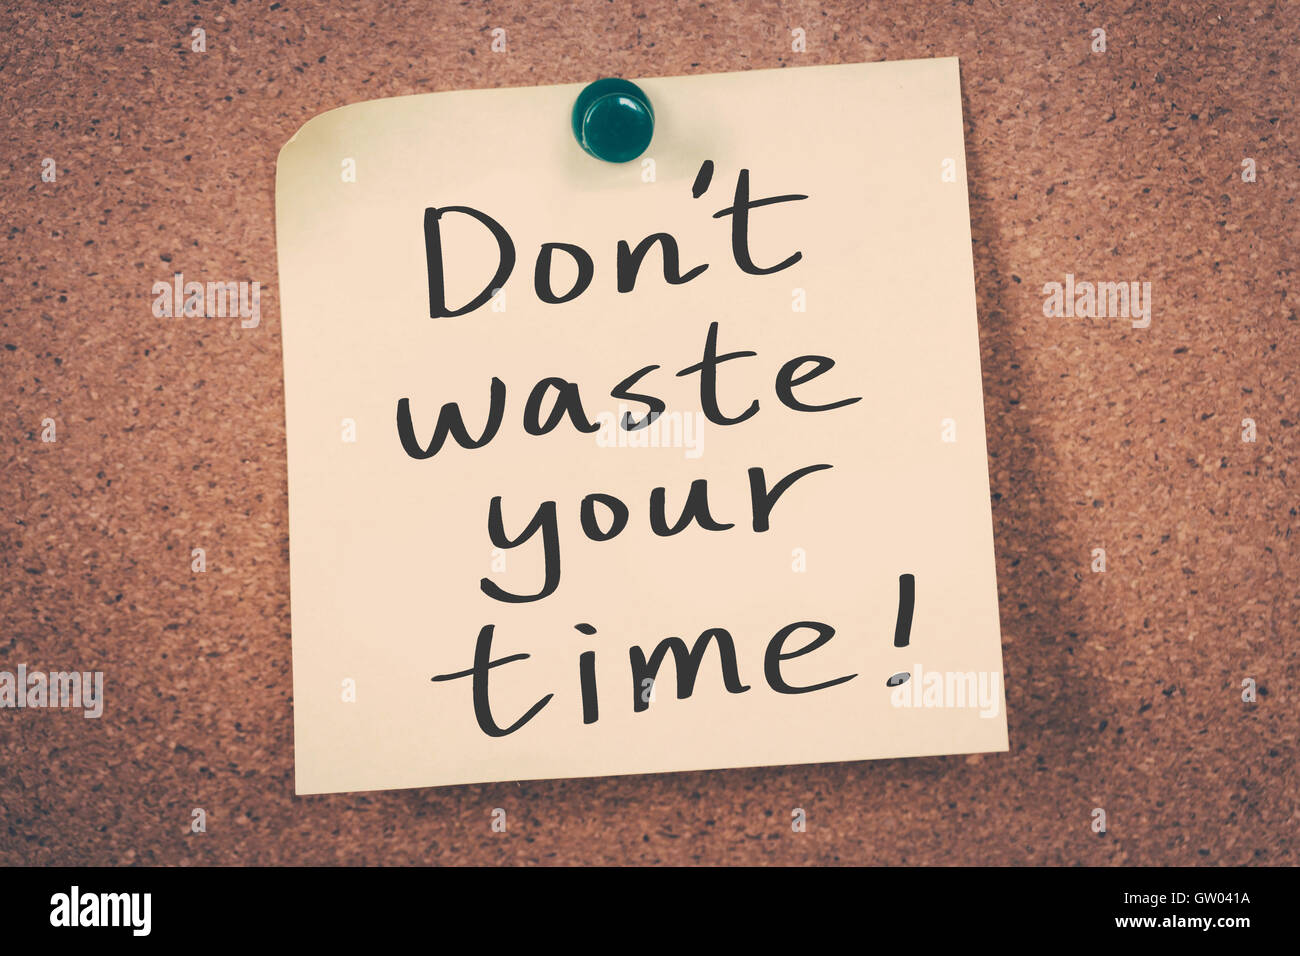 Image result for don't waste time